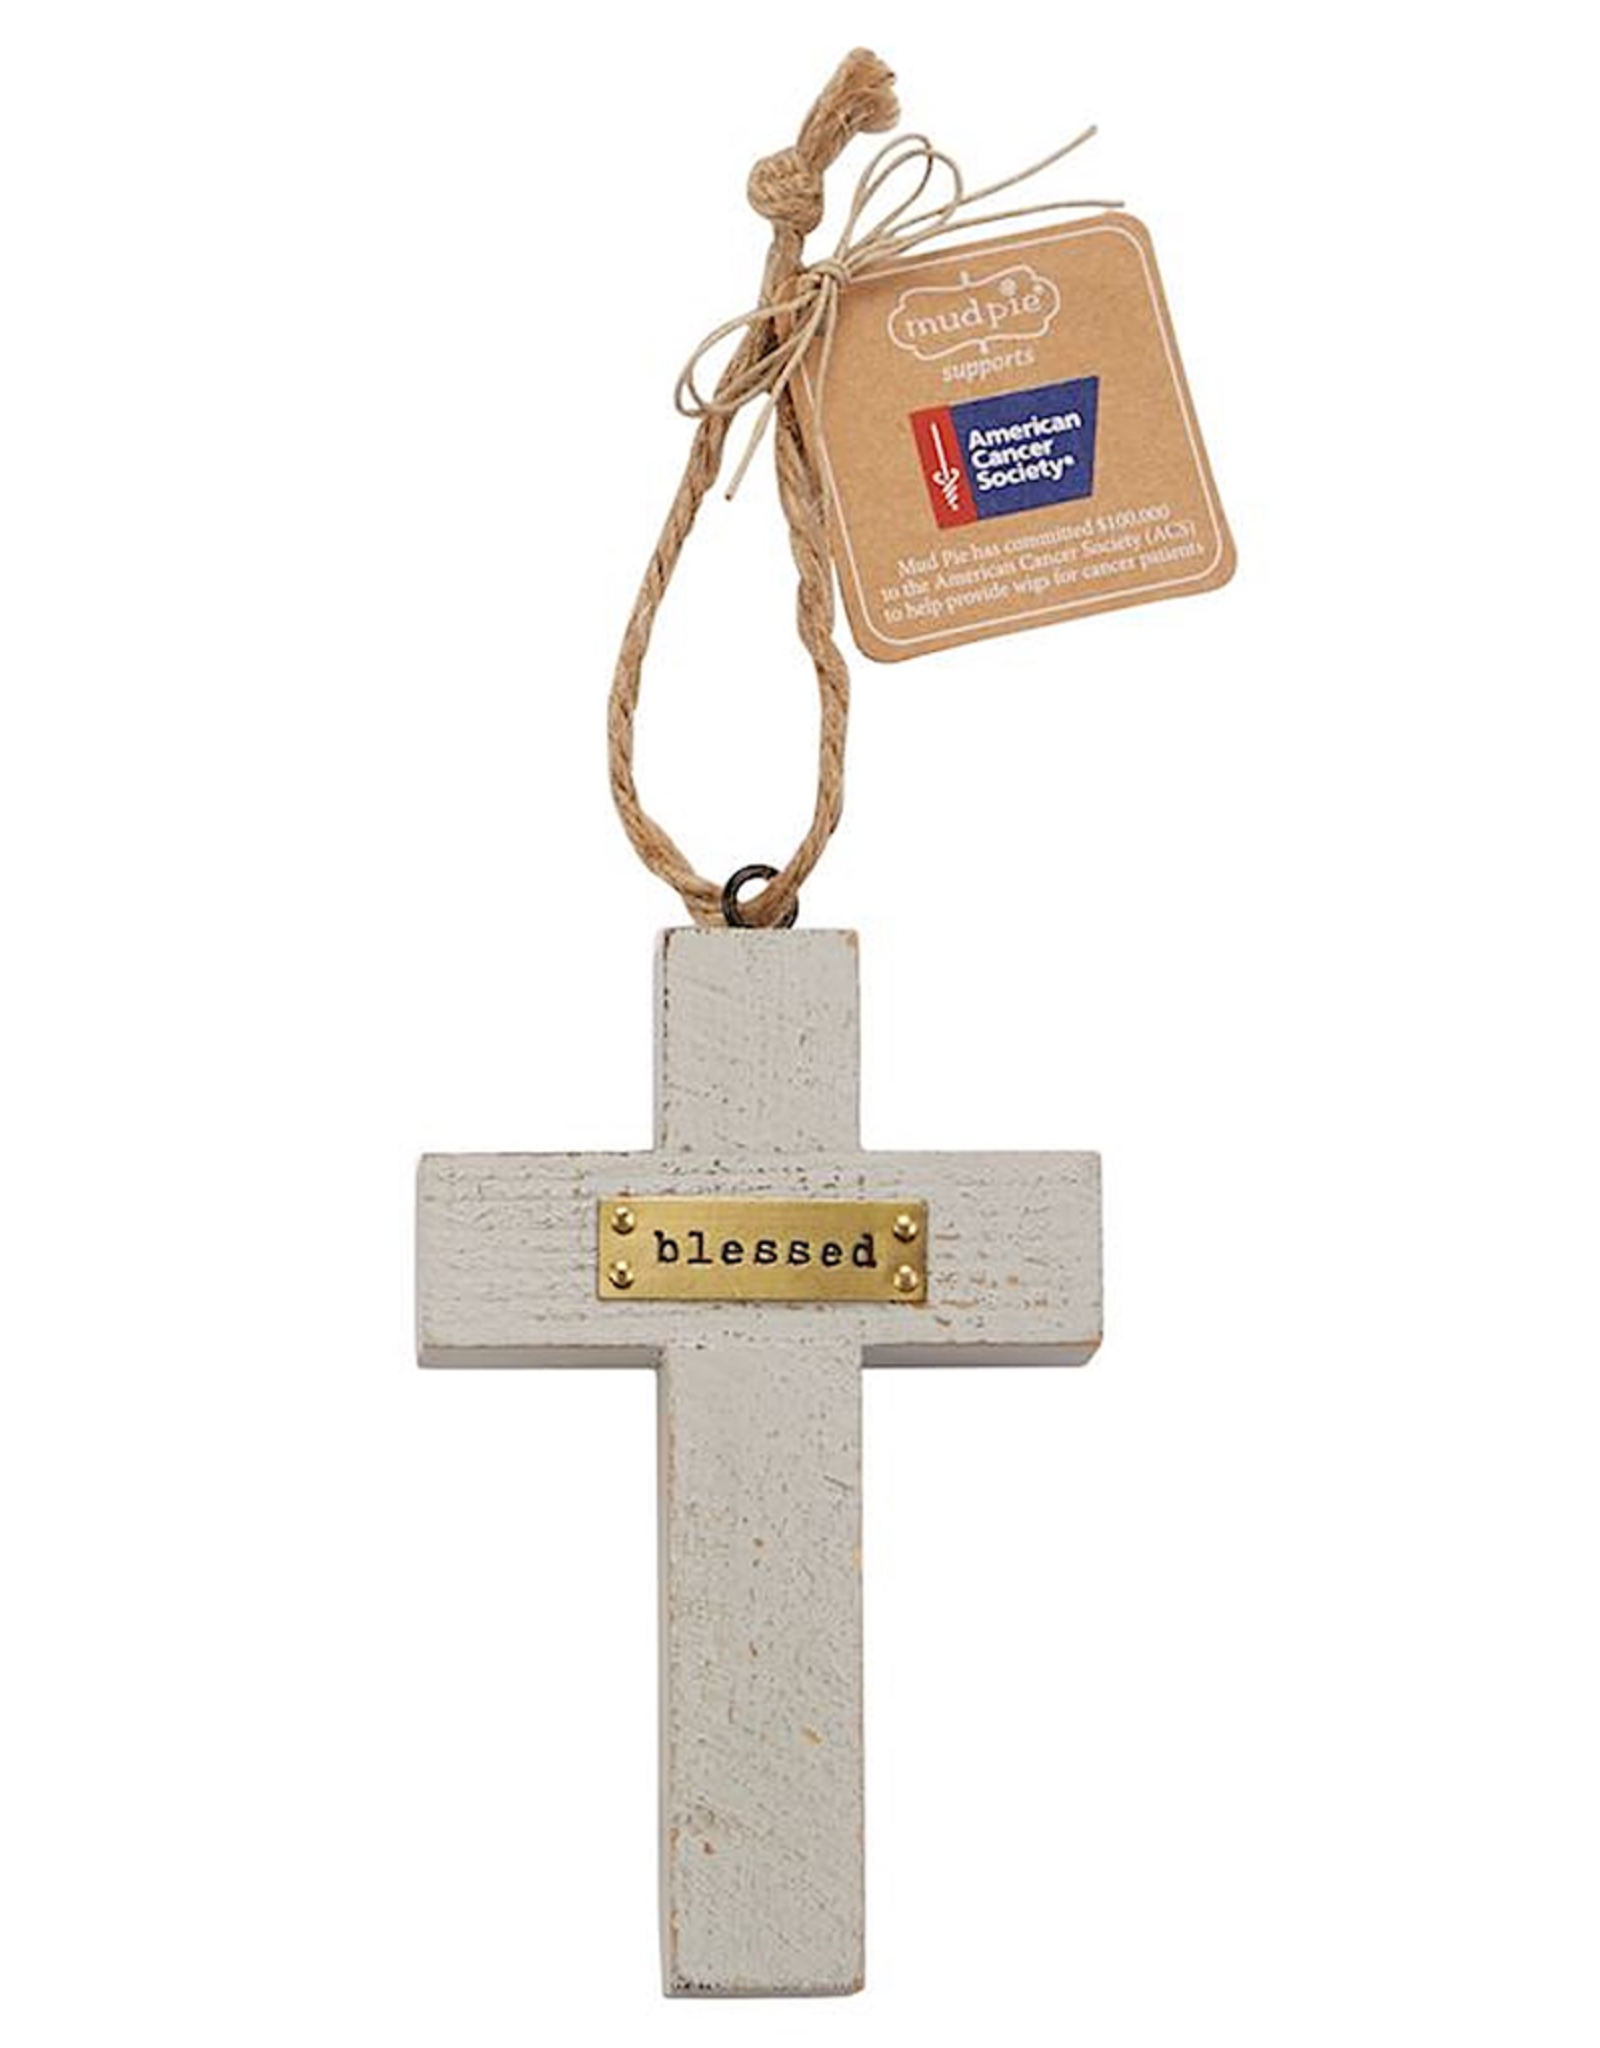 Mud Pie Blessed Wooden Cross American Cancer Society Ornament